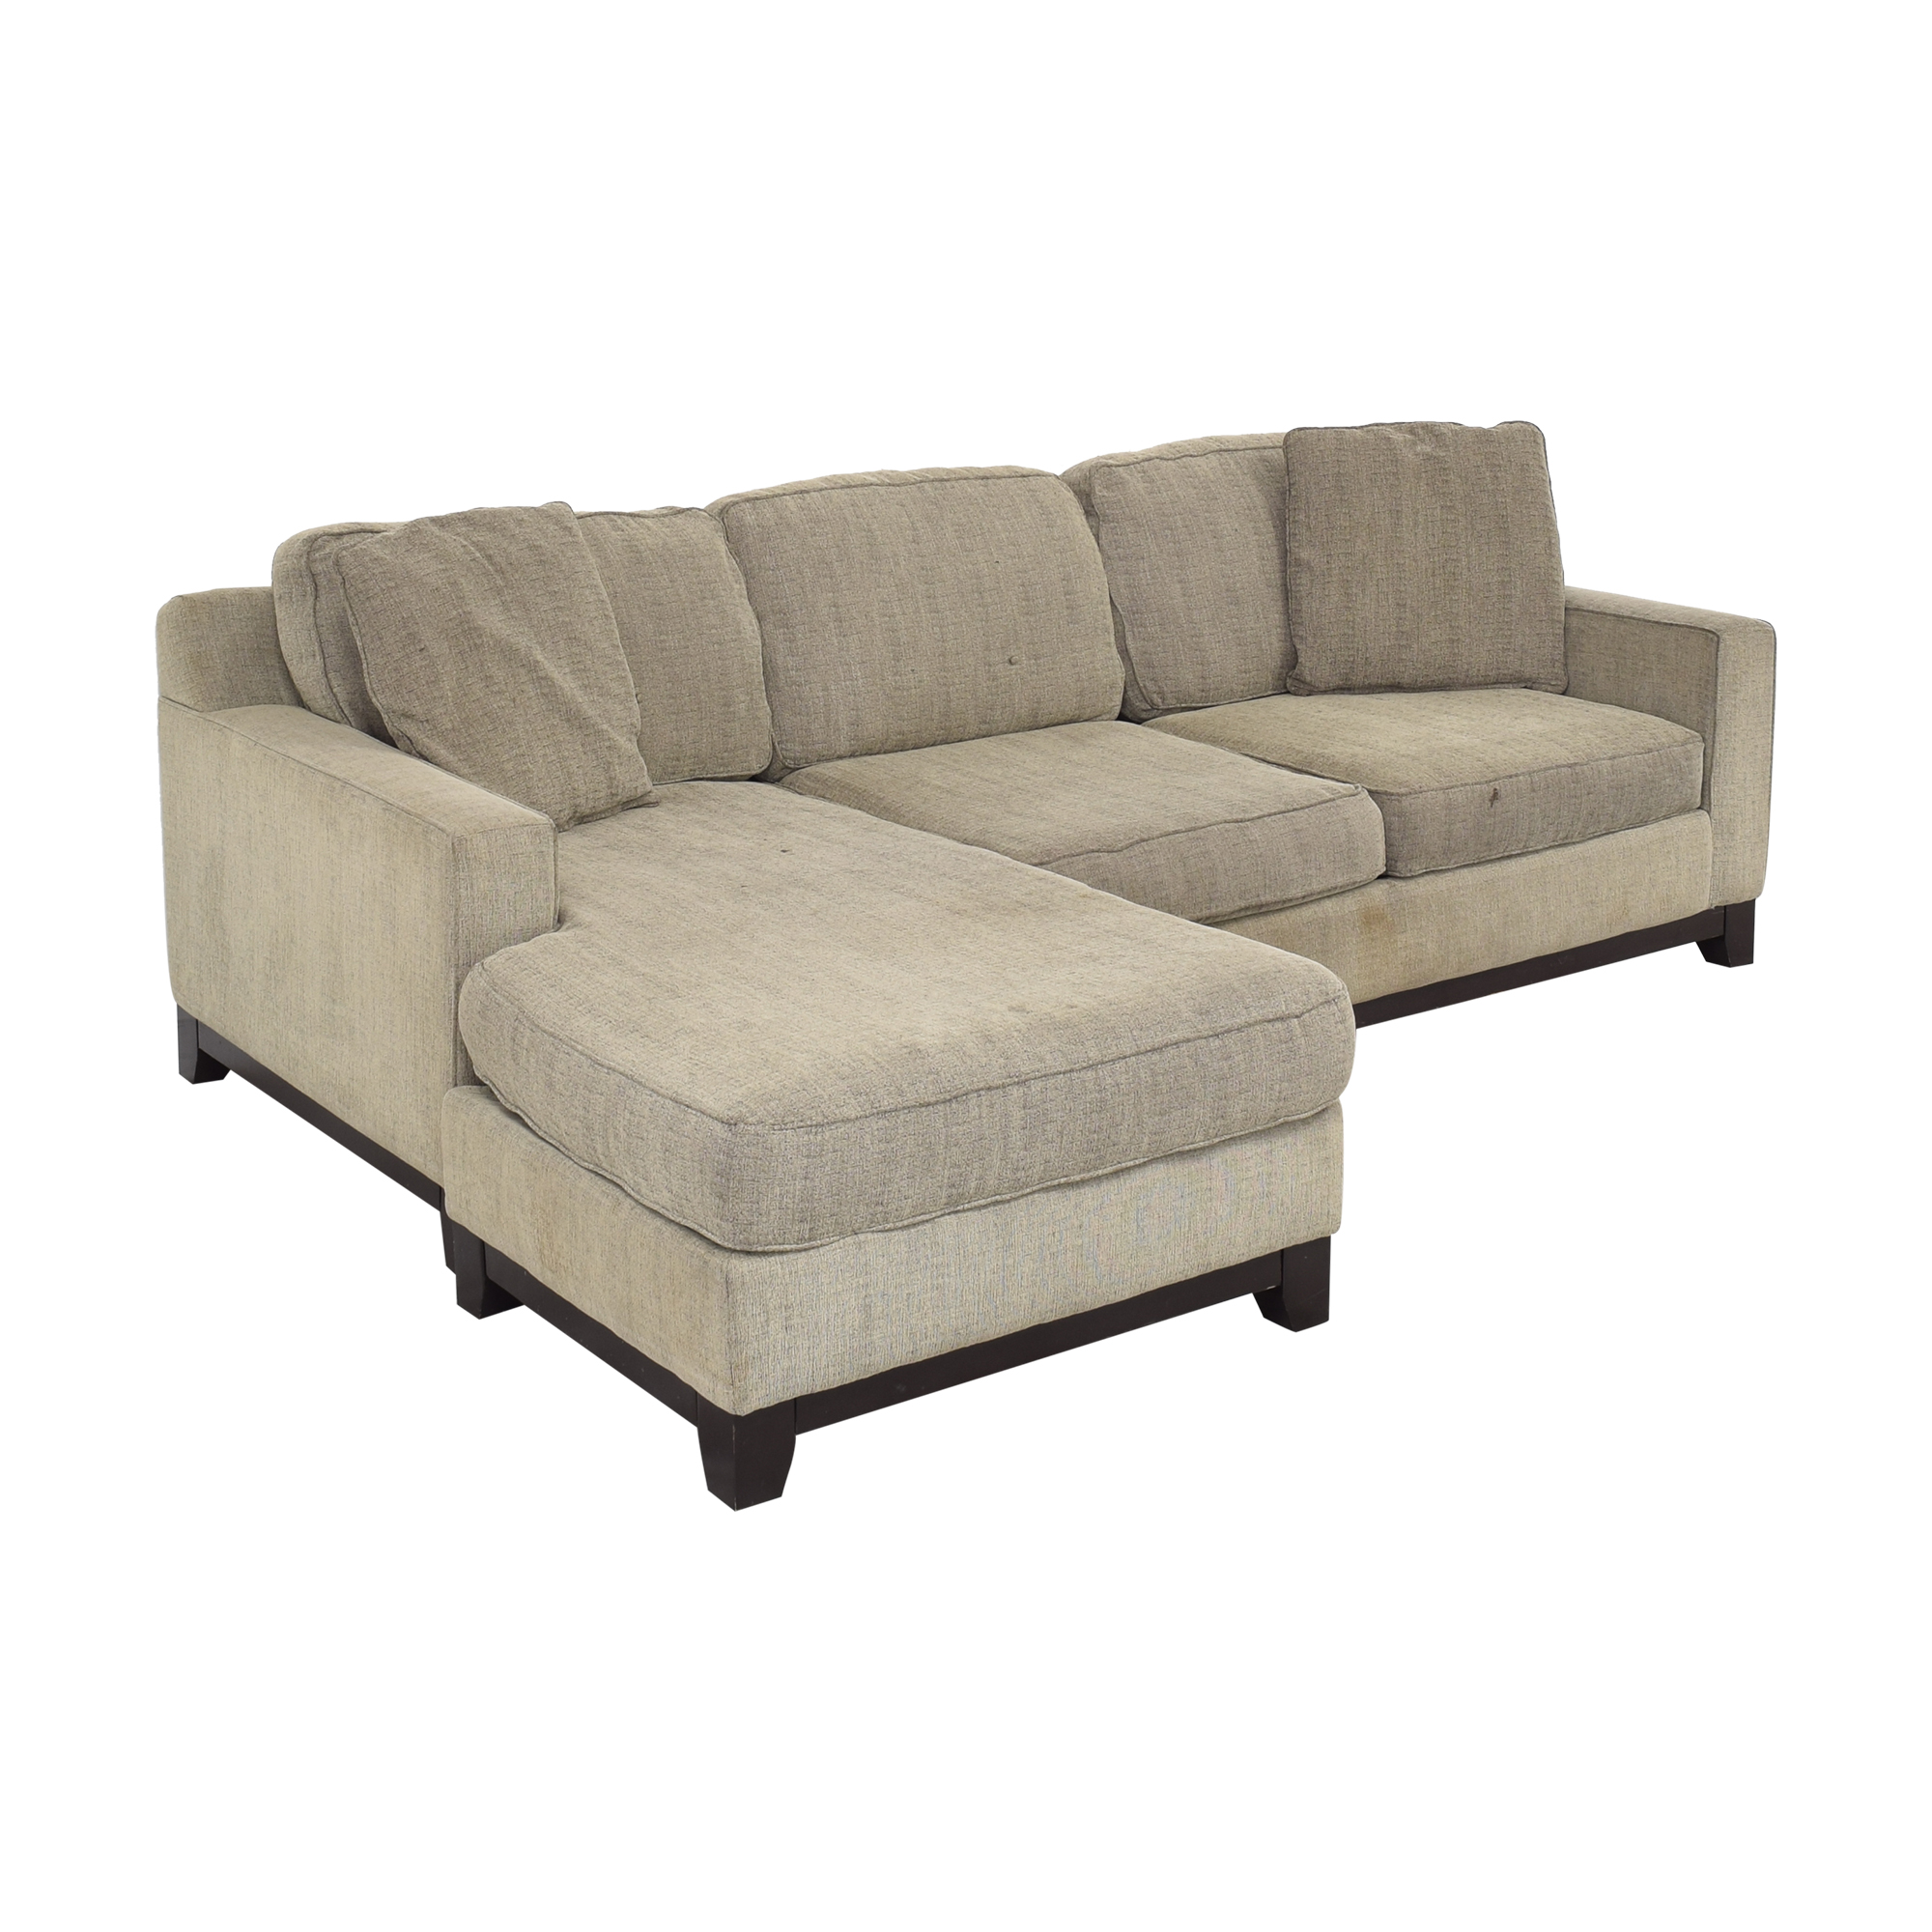 Macy's Jonathan Louis Chaise Sectional Sofa ct